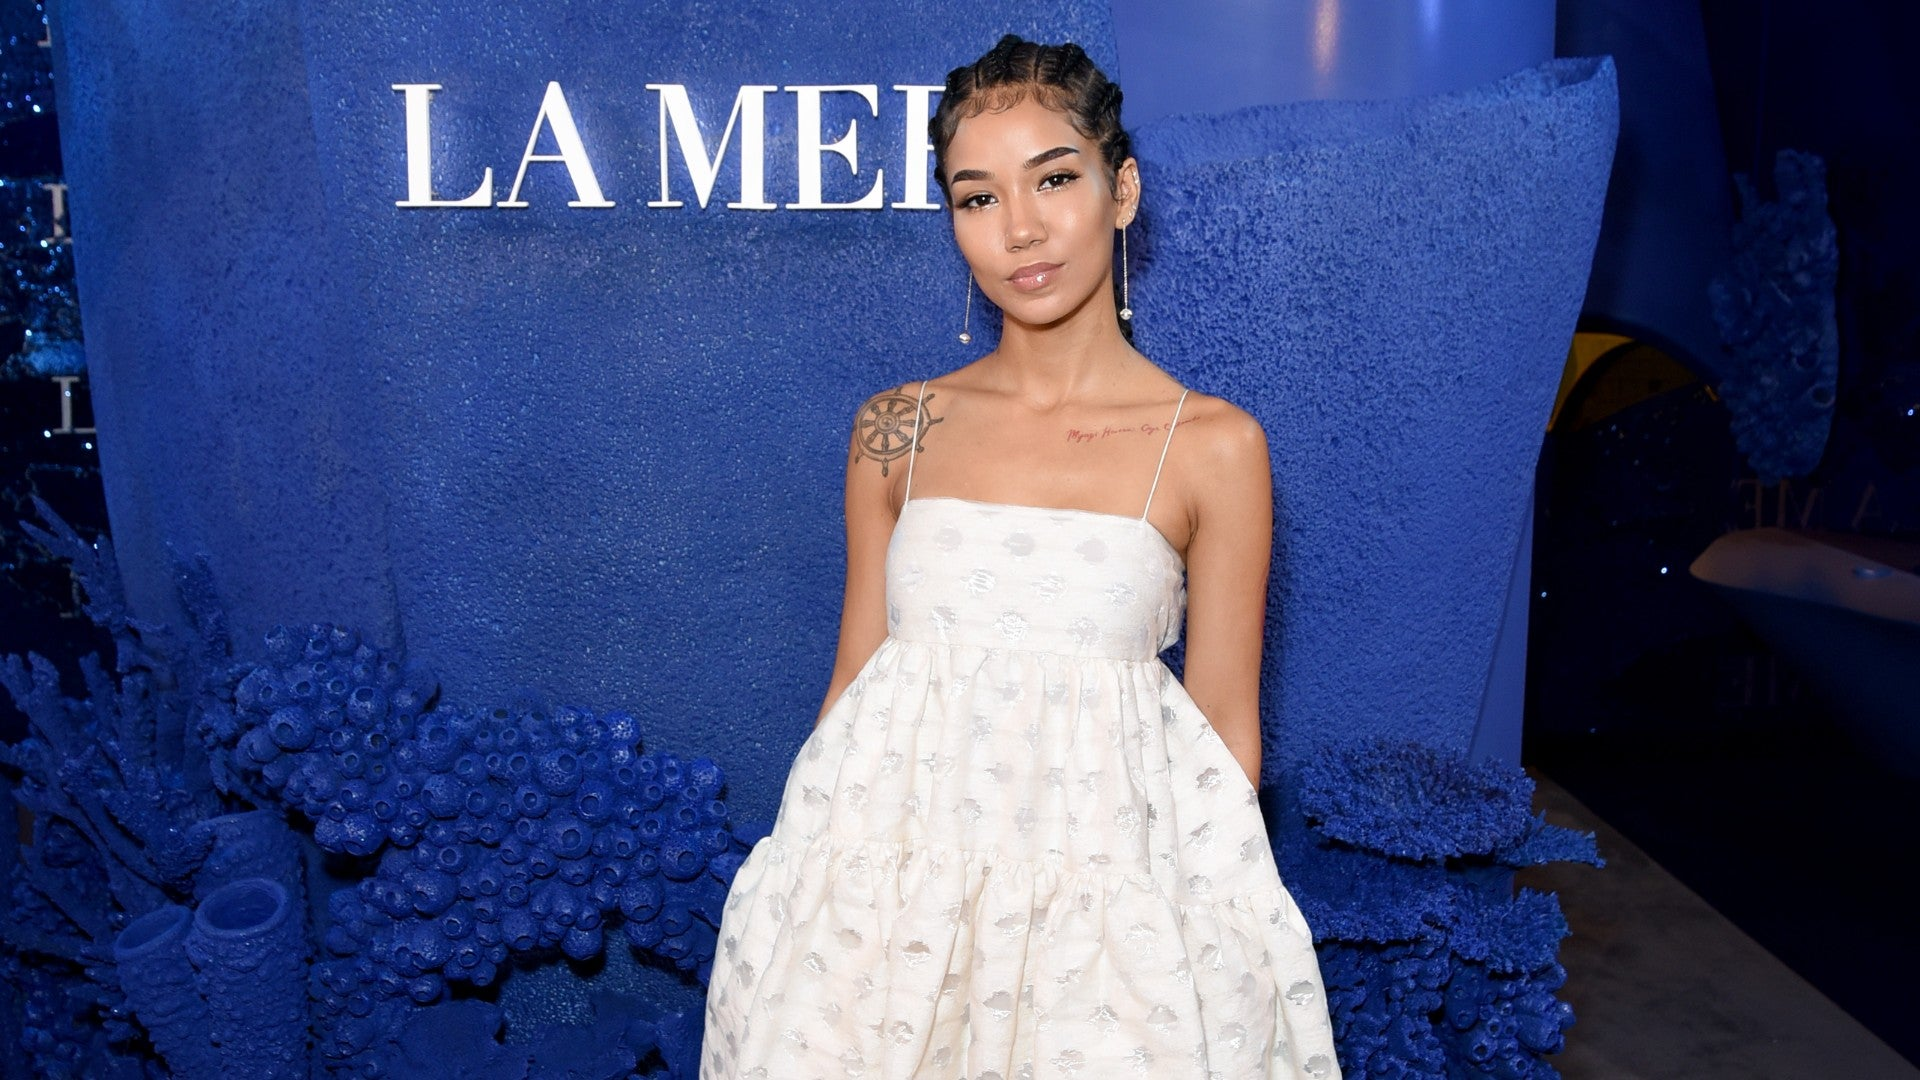 Jhené Aiko Tried To Deal With Her Acne In This Bizarre Way